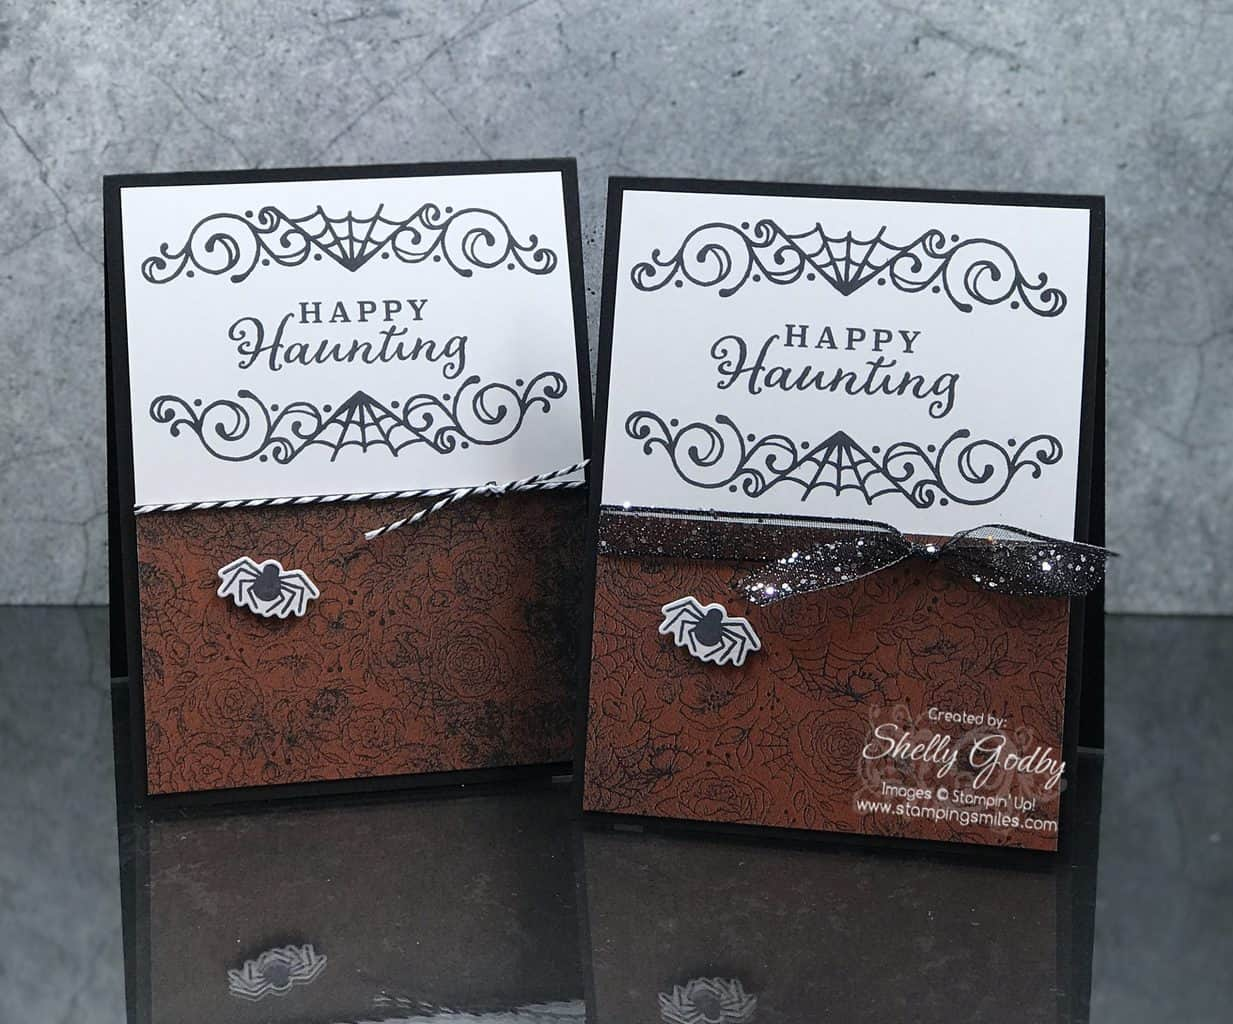 Stampin Up Halloween Card Ideas 2020 Haunting Handmade Halloween Cards with Stampin' Up! Celebration